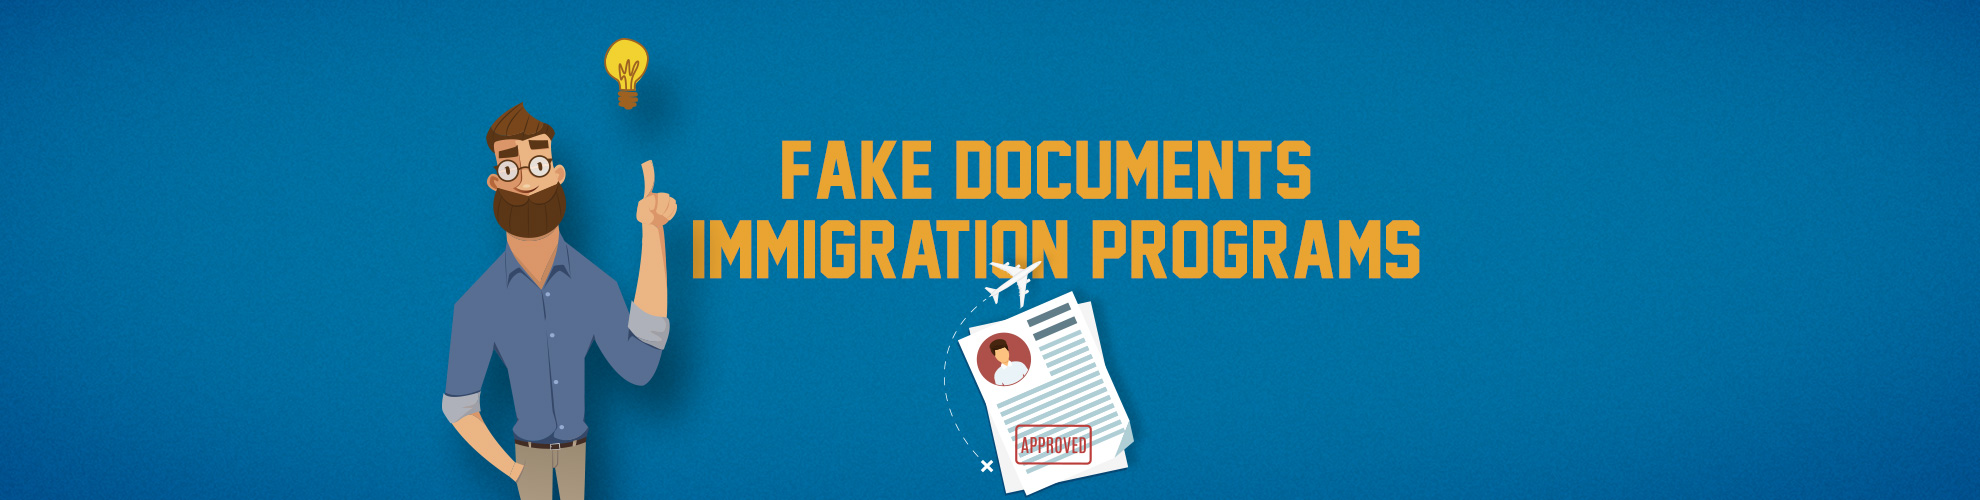 Fake Immigration Documents Online